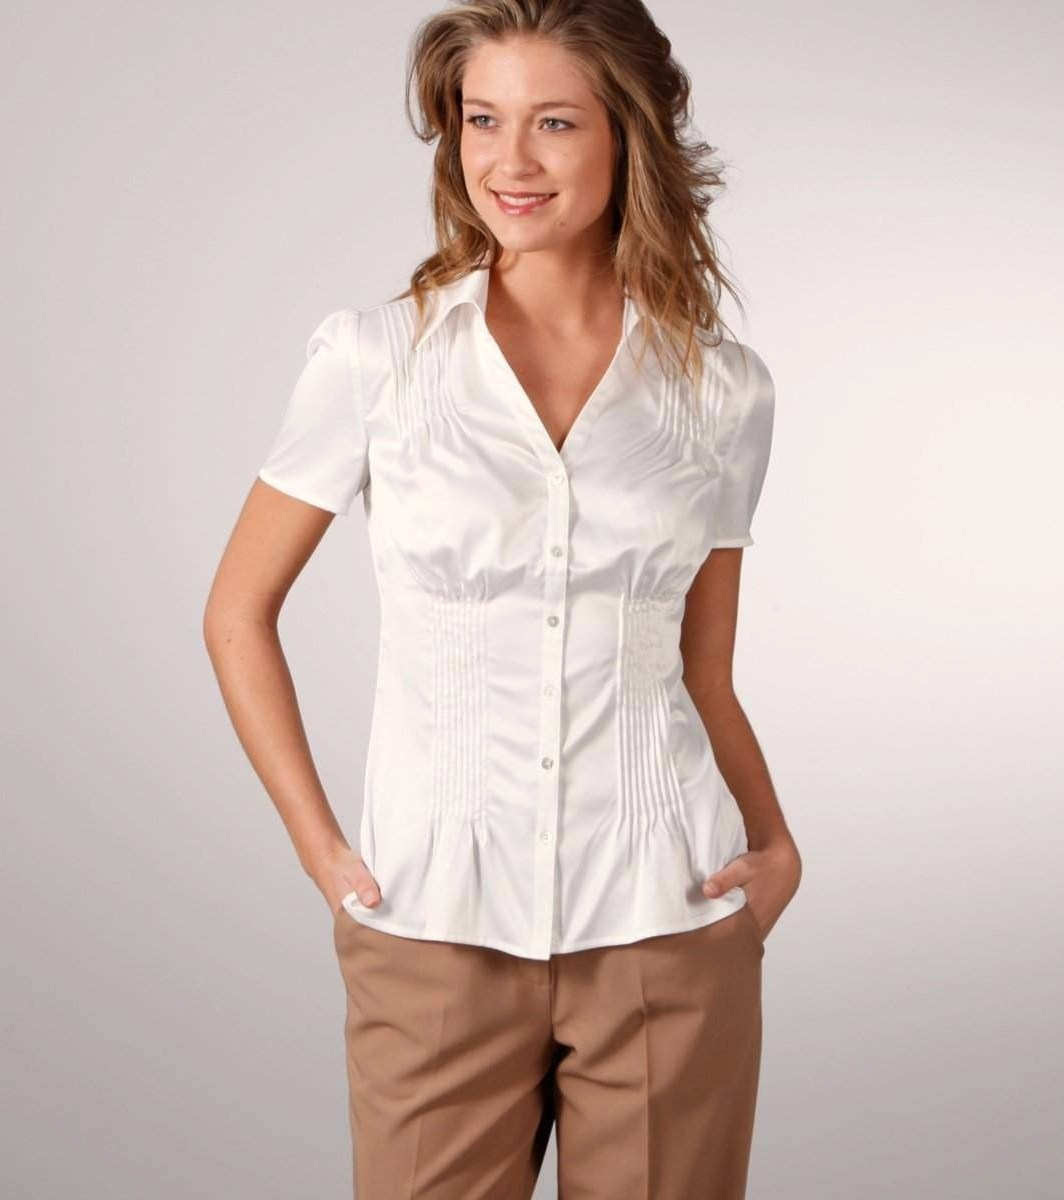 Combine women's short sleeve shirts with women's shorts for a versatile look that will prepare you for all of your athletic activities. Shop short sleeve shirts for men, boys and girls, and be sure to check out the entire collection of women's shirts and tops for additional options.